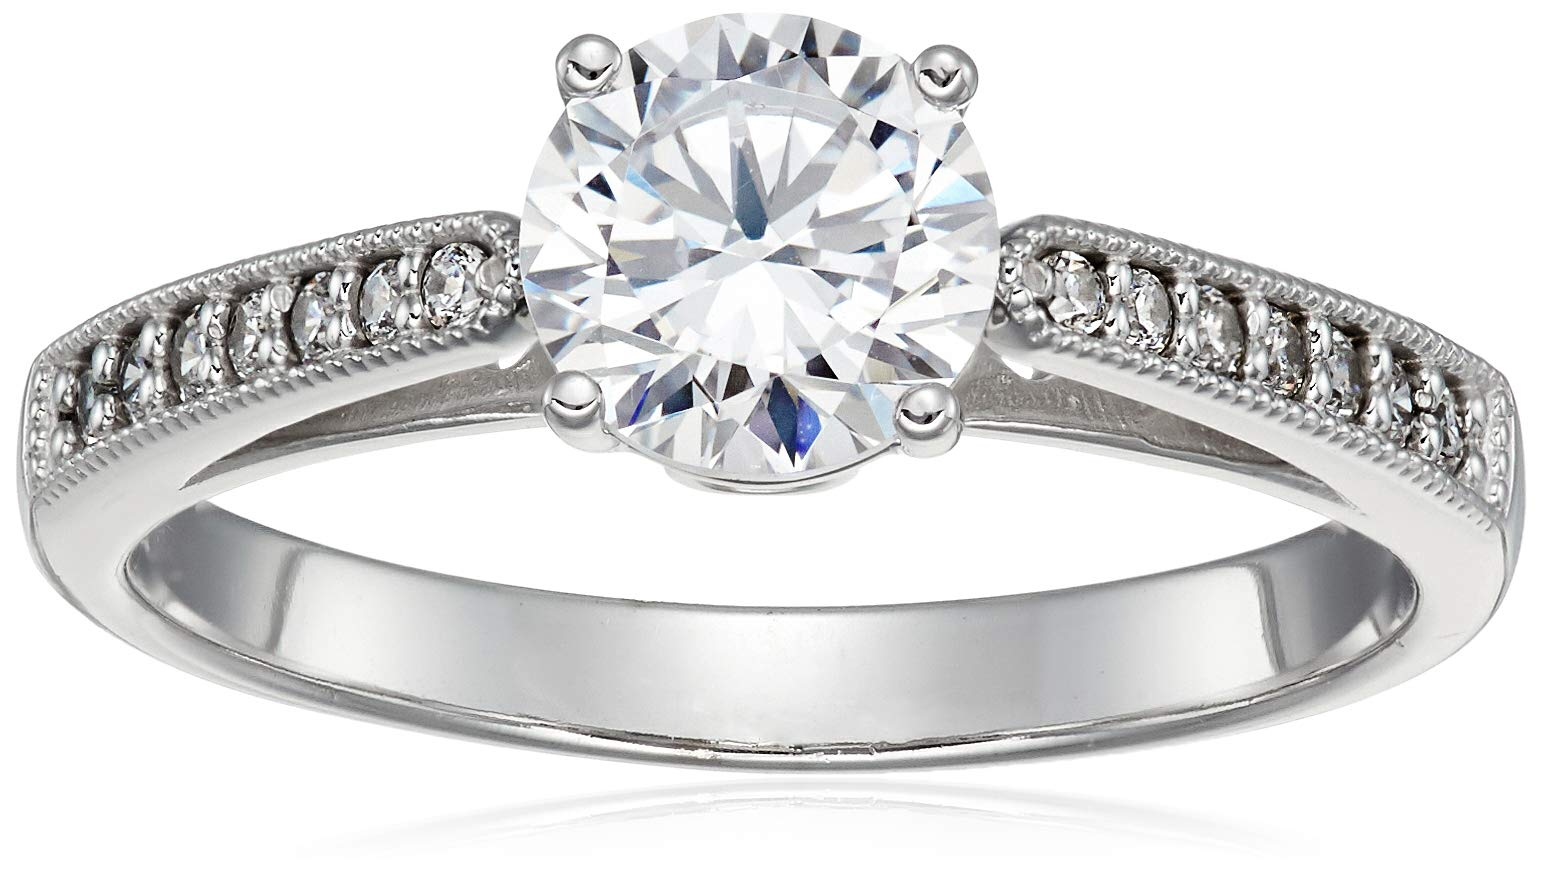 Size 6.5 - Solid 14k White Gold Milgrain Band with Round Brilliant Cut Solitaire with Round Side Stones CZ Cubic Zirconia Engagement Ring 1.5ct.